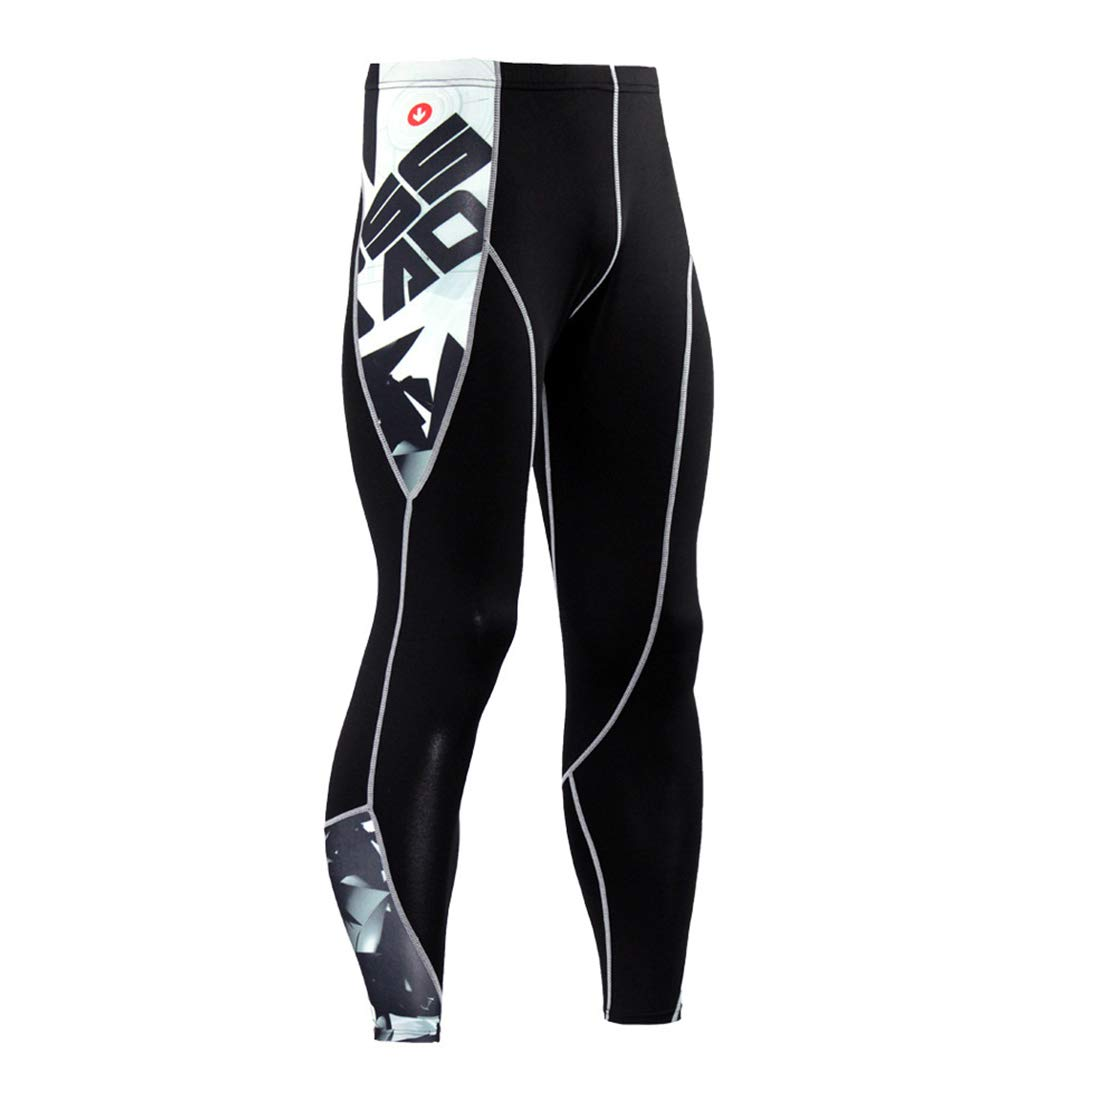 Base Layer Men's Leggings Compression thermal Fitness Pants Tights Leggings for Cycling Running Hiking Gym